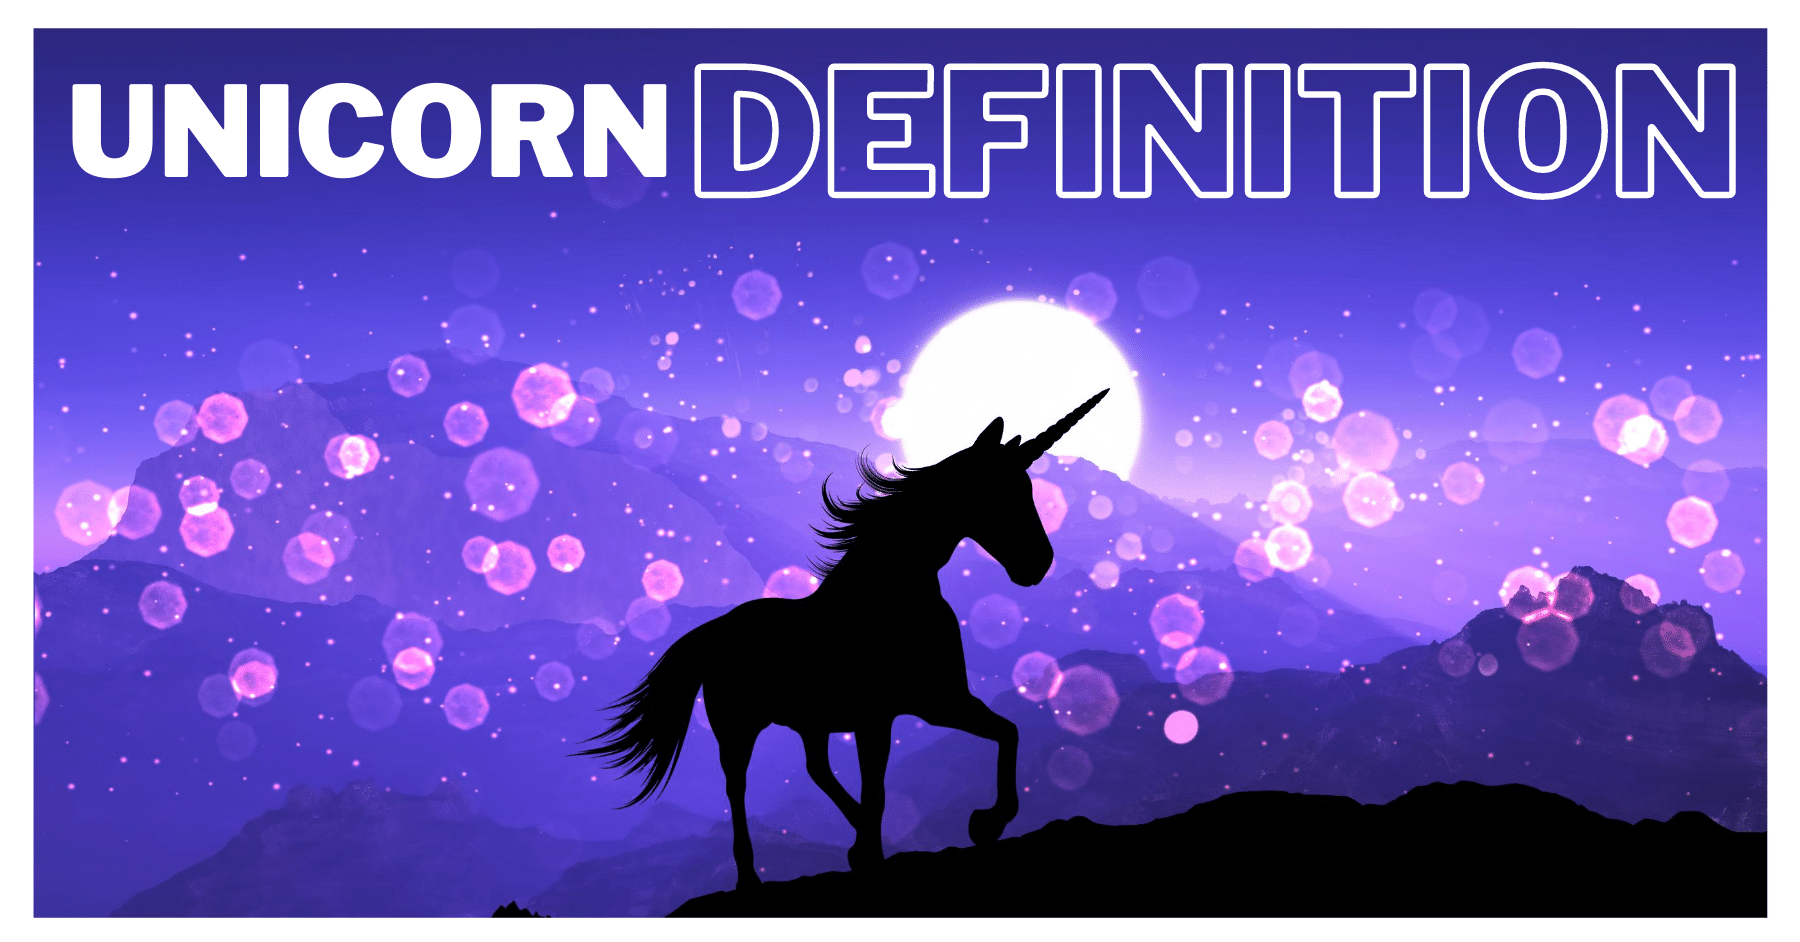 Unicorn Definition and Meaning Will Surprise You!